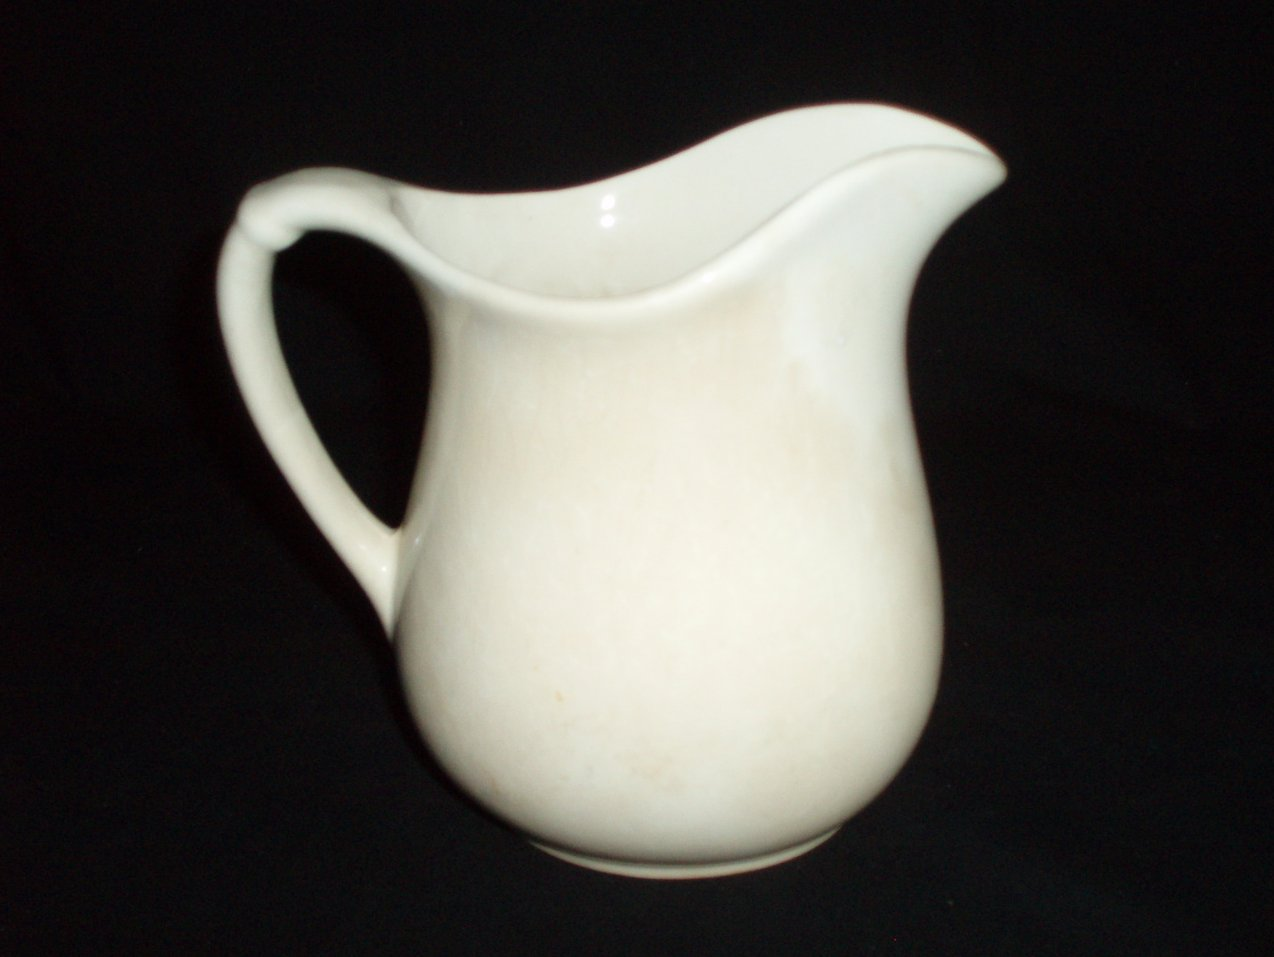 Antique Ironstone white Pottery Pitcher 45 oz.